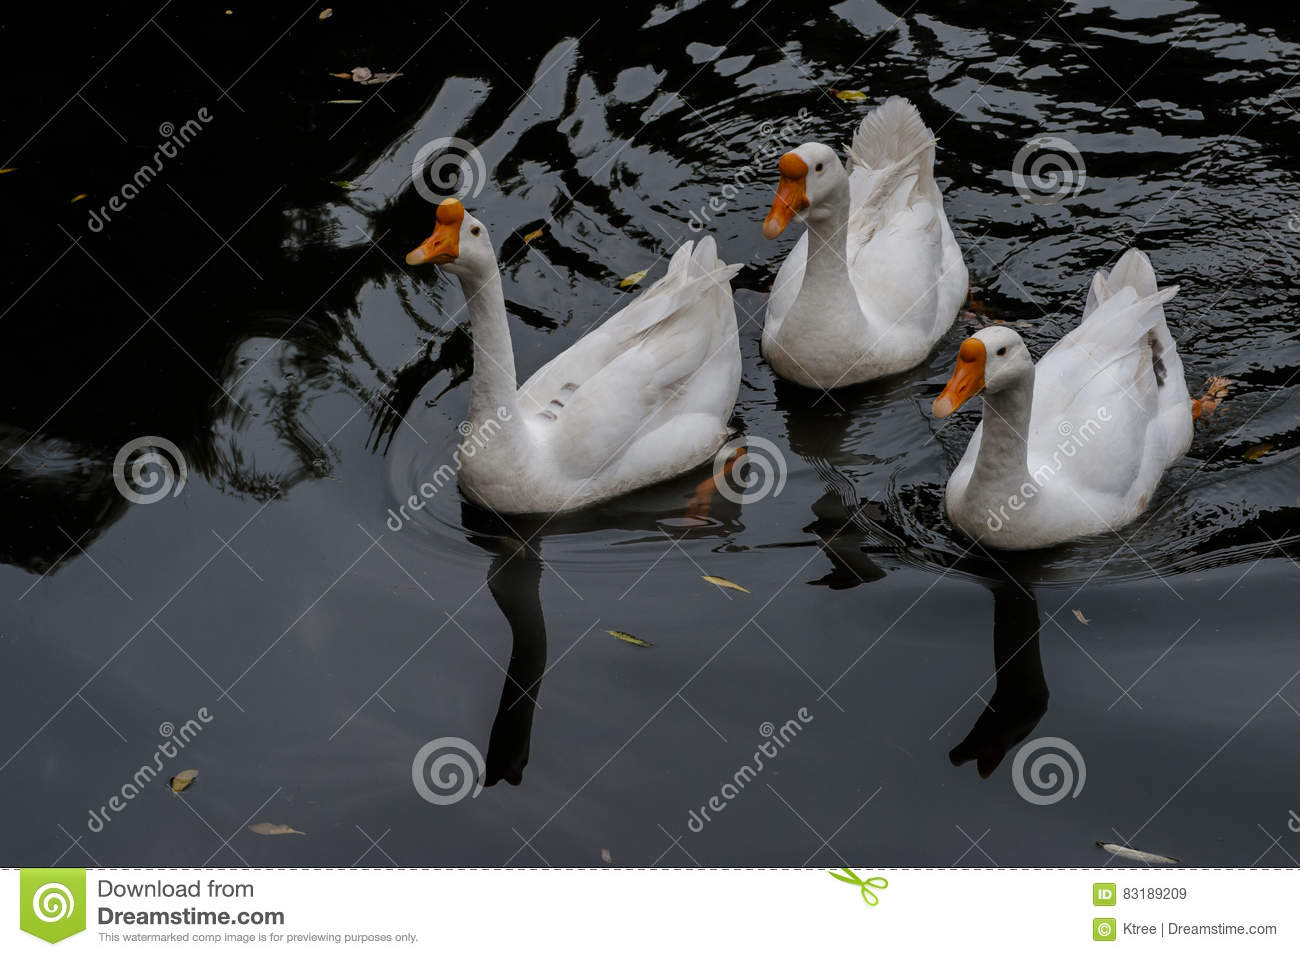 Cruising in the pond in the Great White Goose